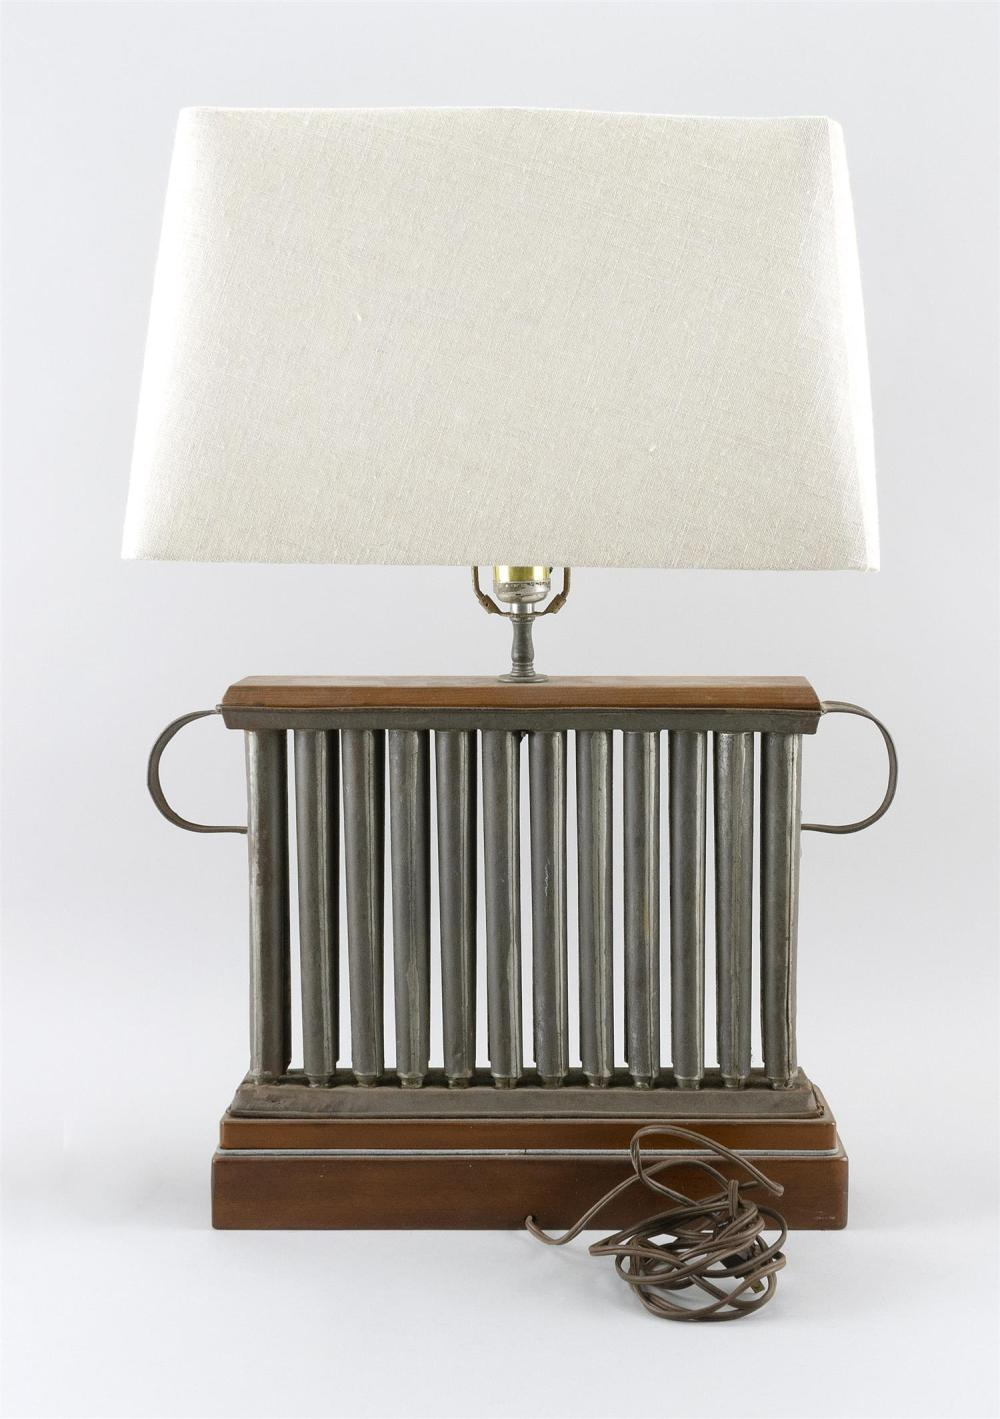 FIVE ASSORTED TIN CANDLE MOLDS One mounted as a table lamp. Heights including lampshade from 10